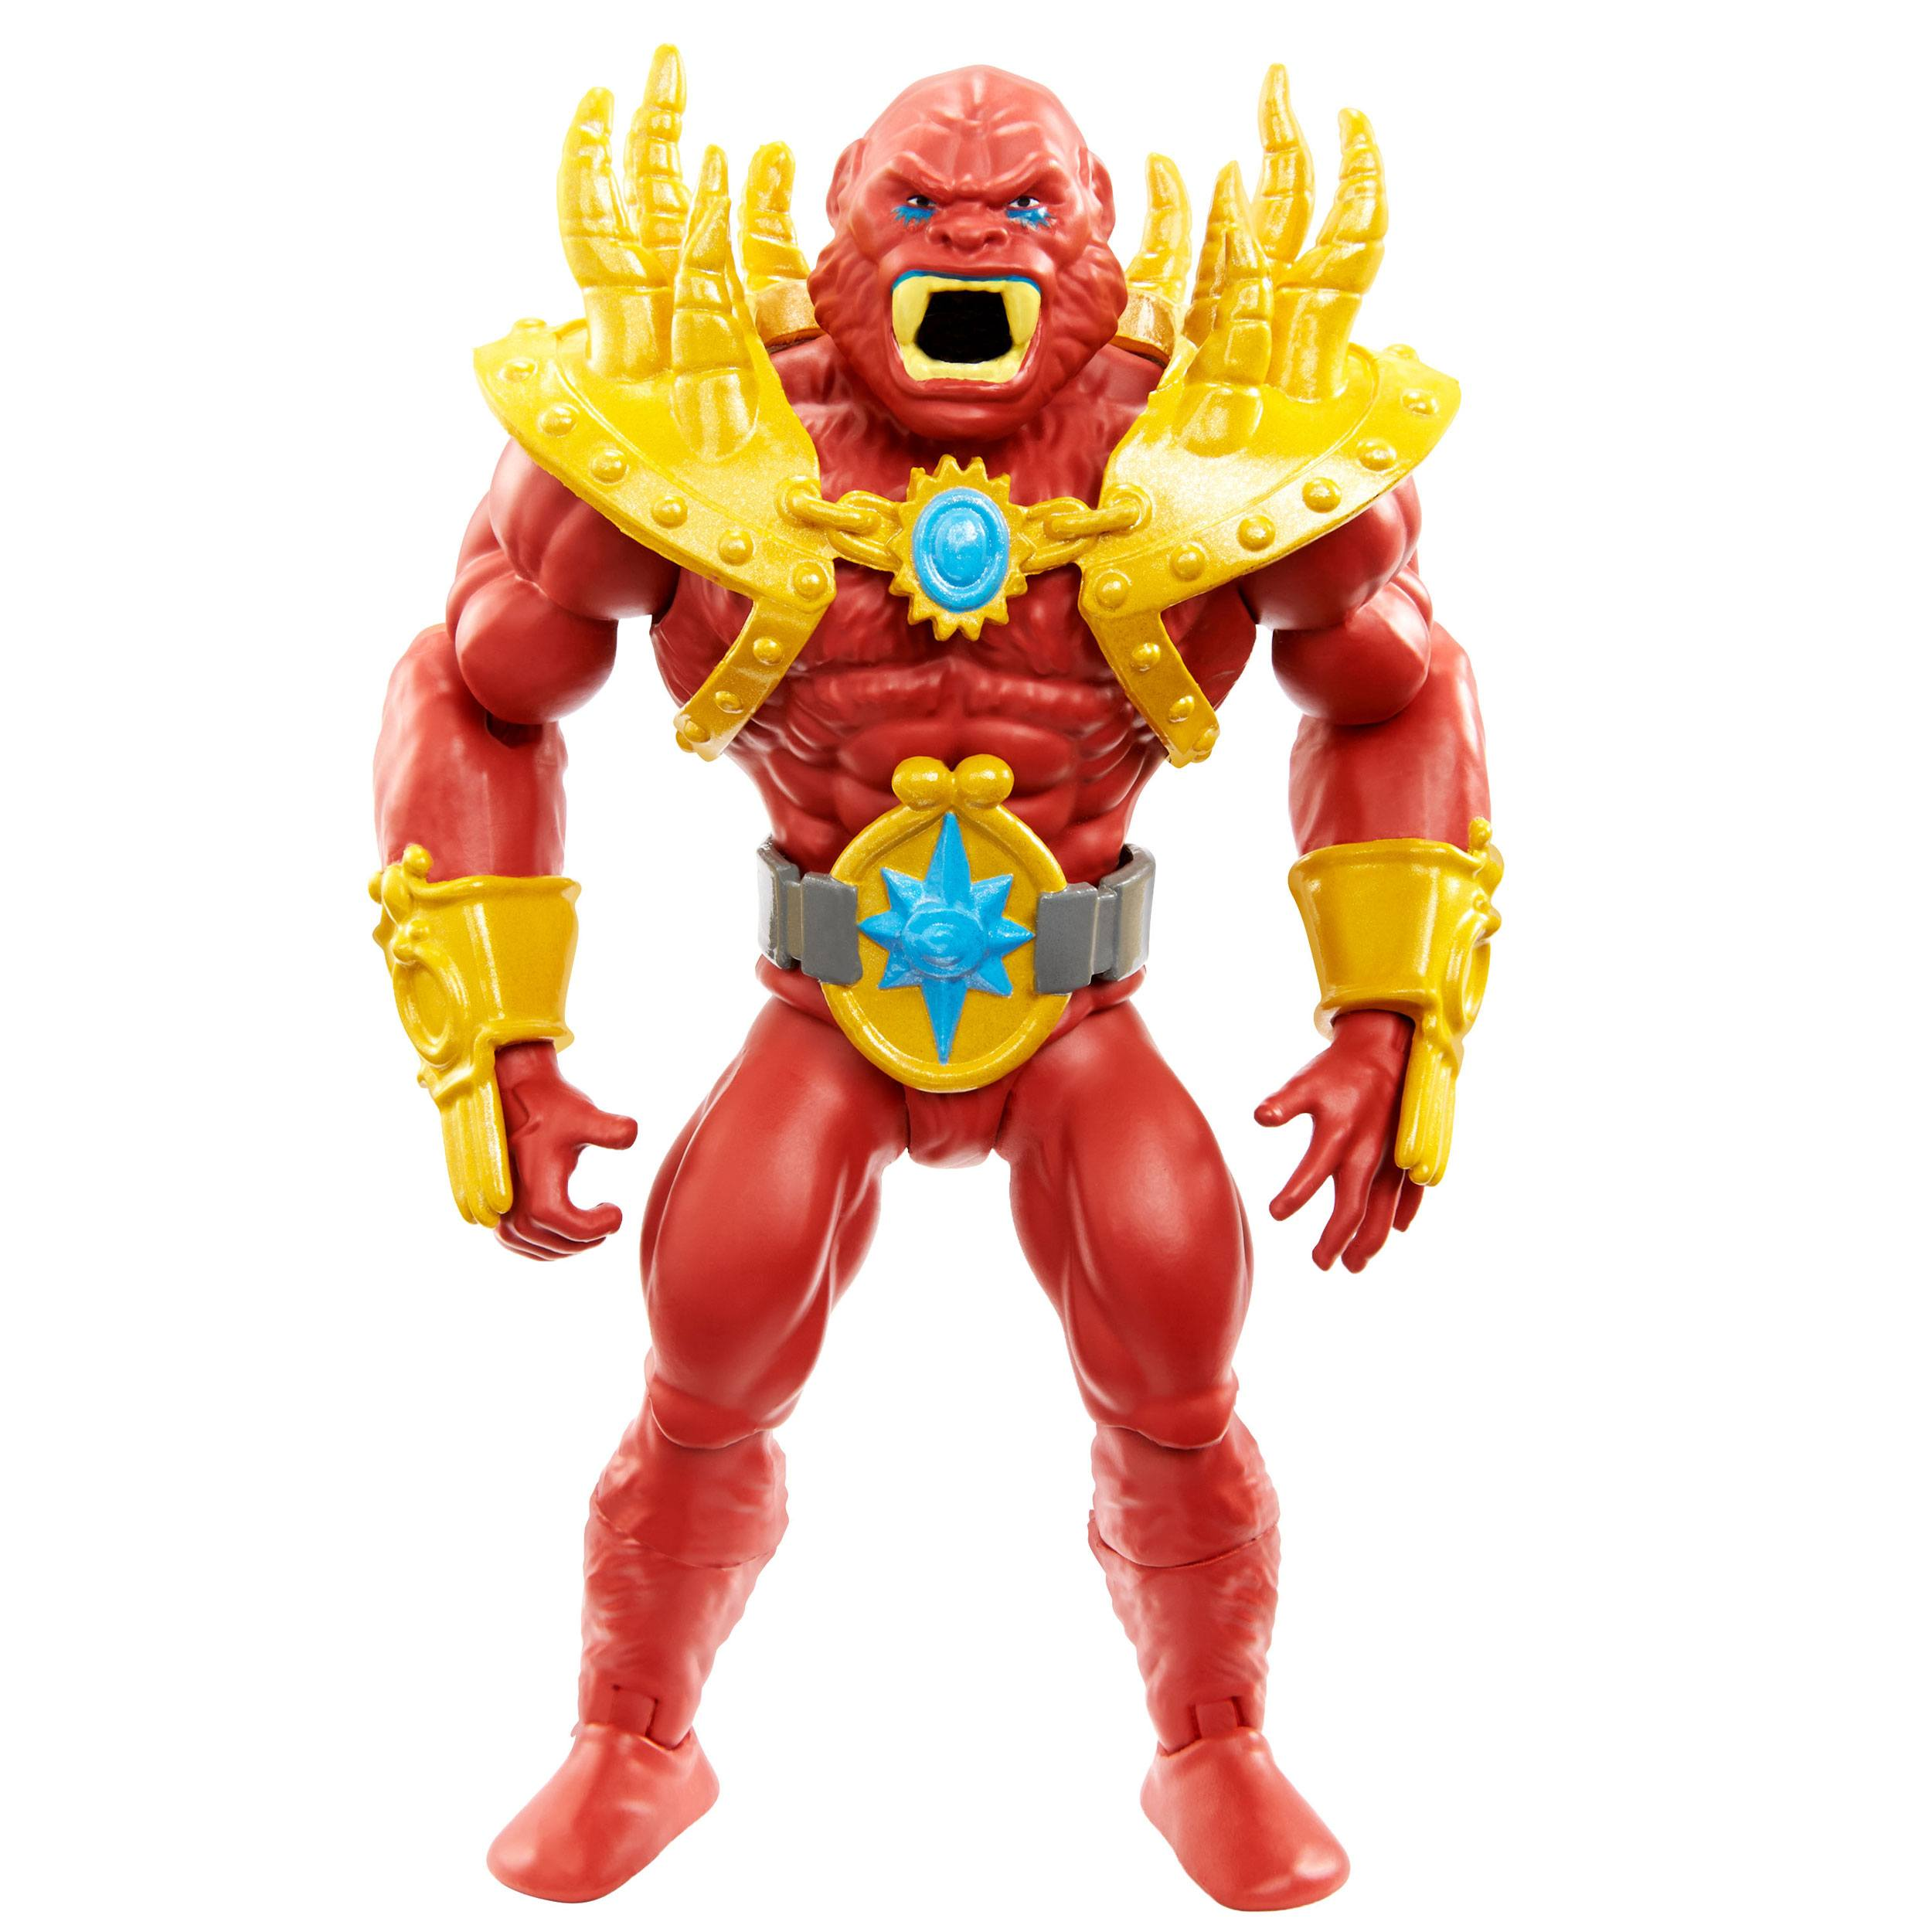 Masters of the Universe Origins Actionfigur 2021 Lords of Power Beast Man 14 cm MATTGYY26 0887961982794